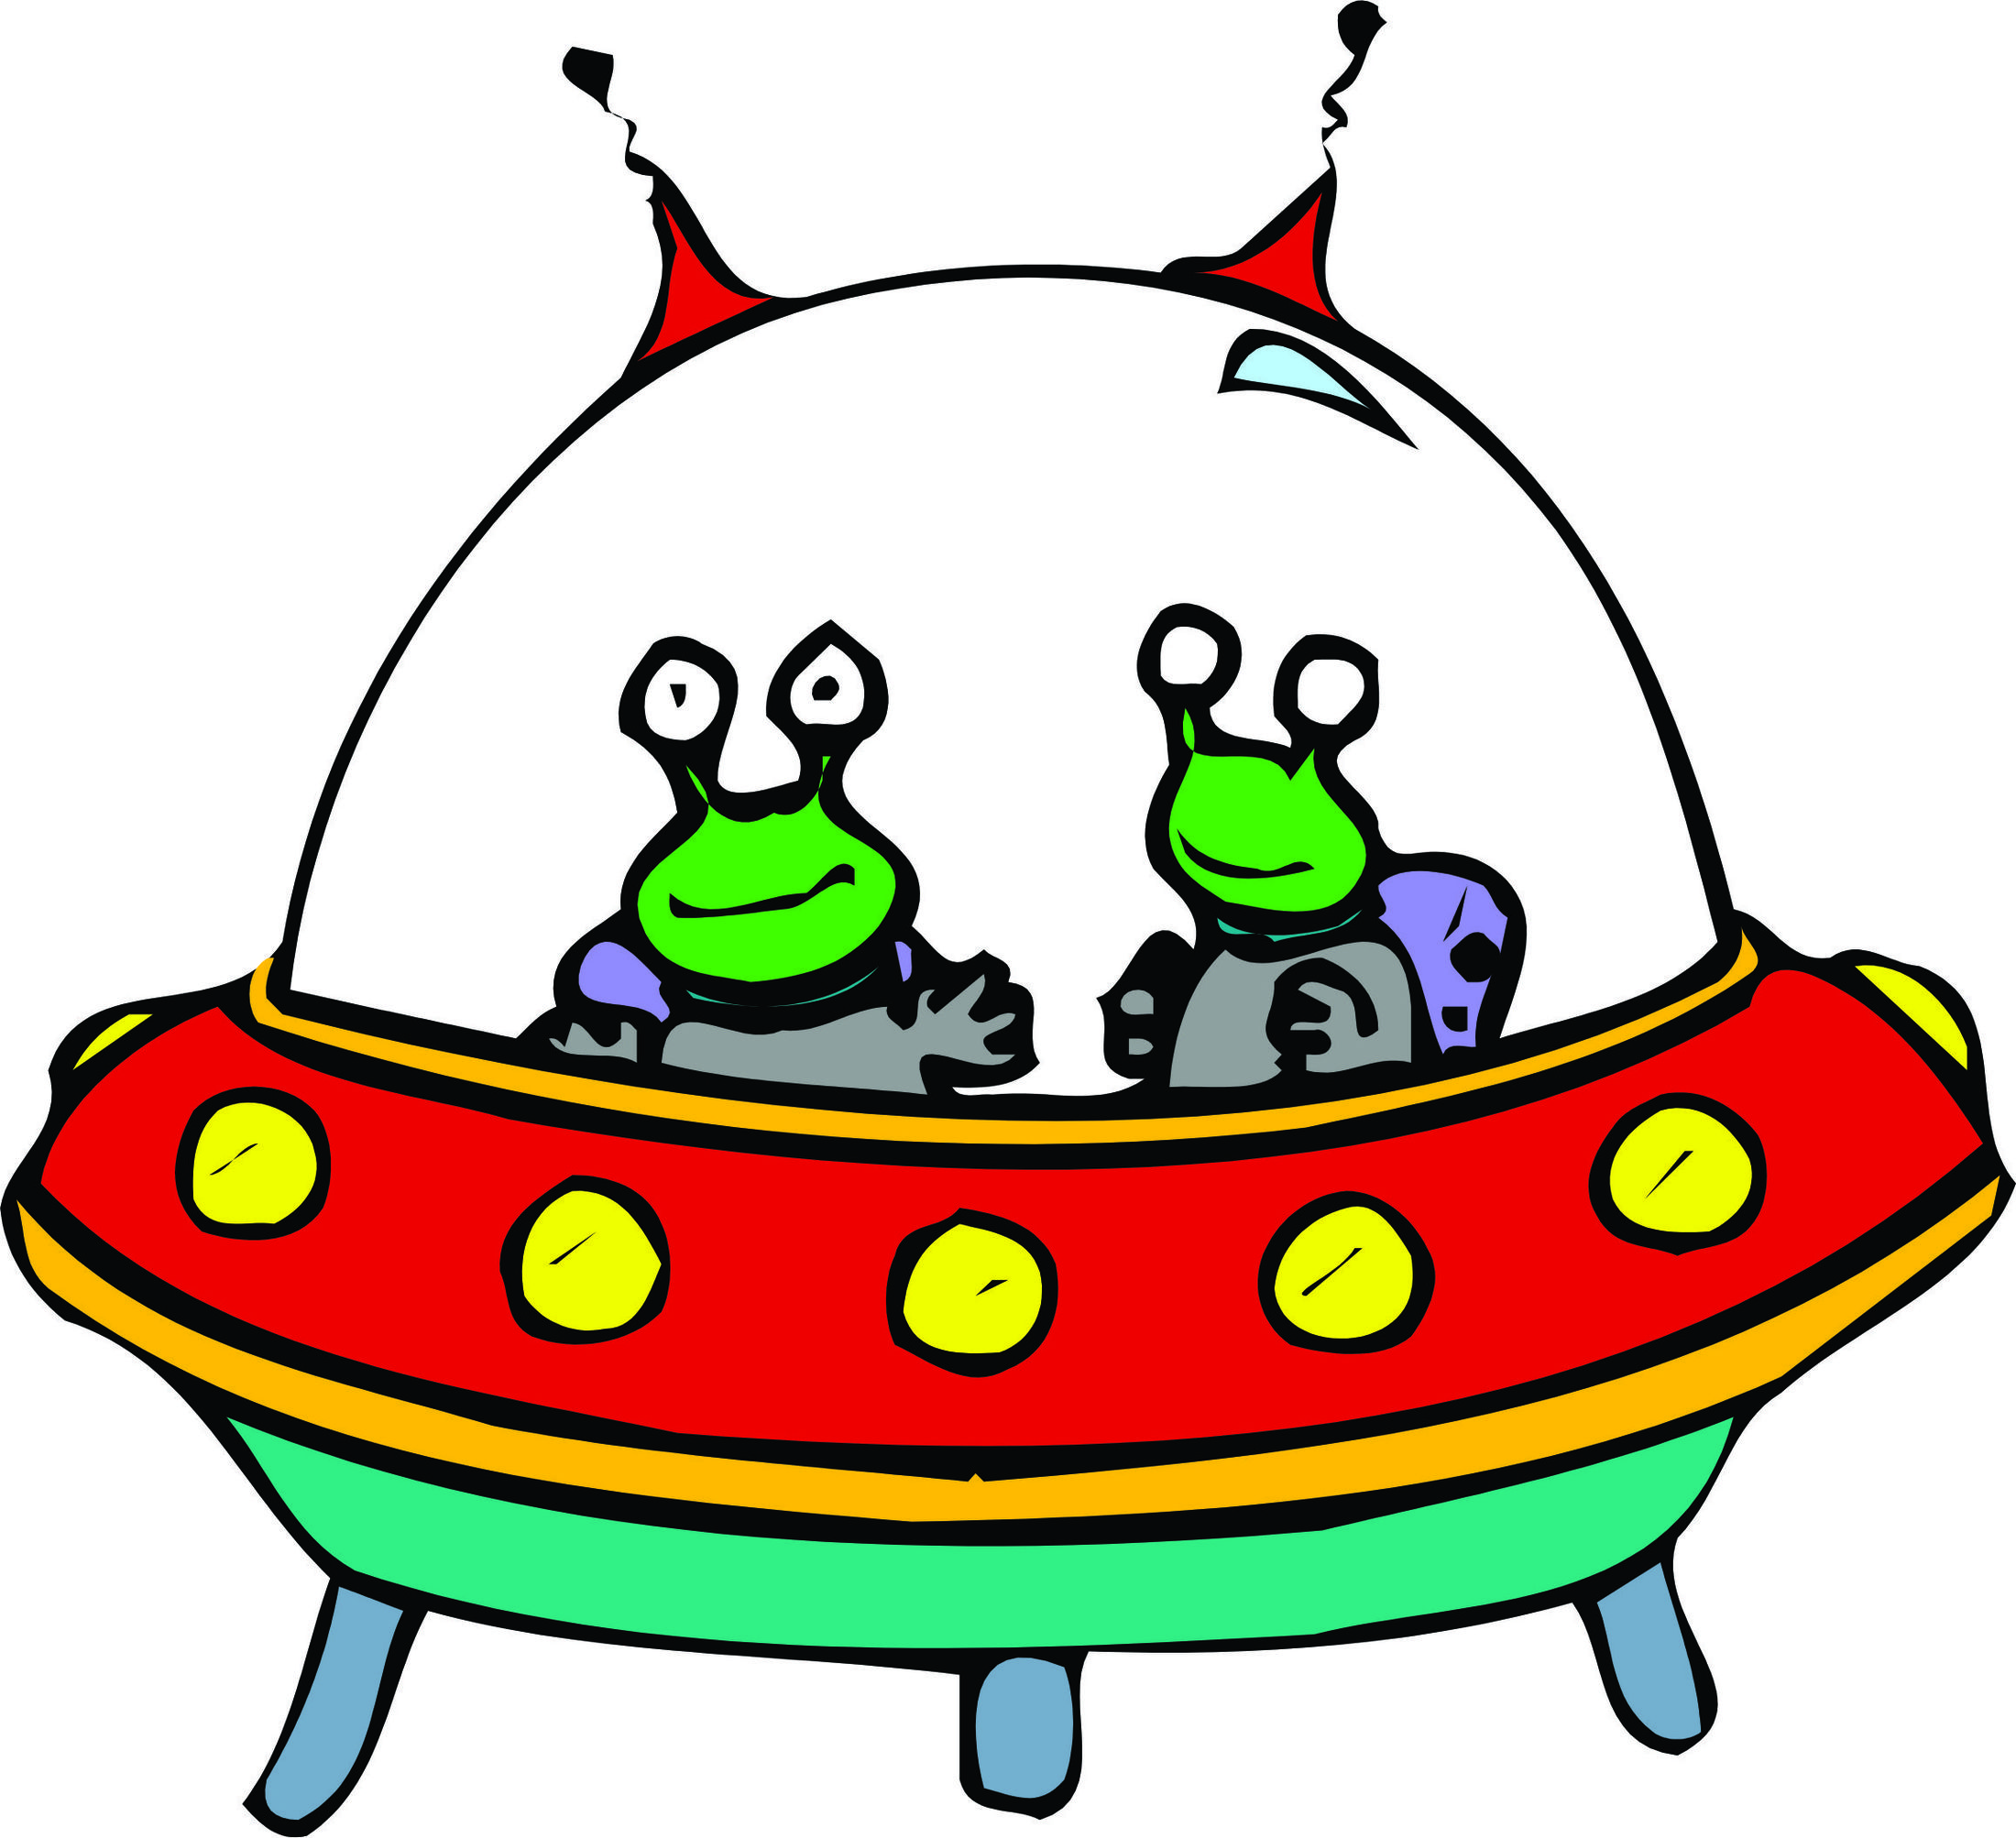 Clip Art Spaceship Clipart Alien In A Sp-Clip Art Spaceship Clipart alien in a spaceship clip art clipart free to use resource art-5